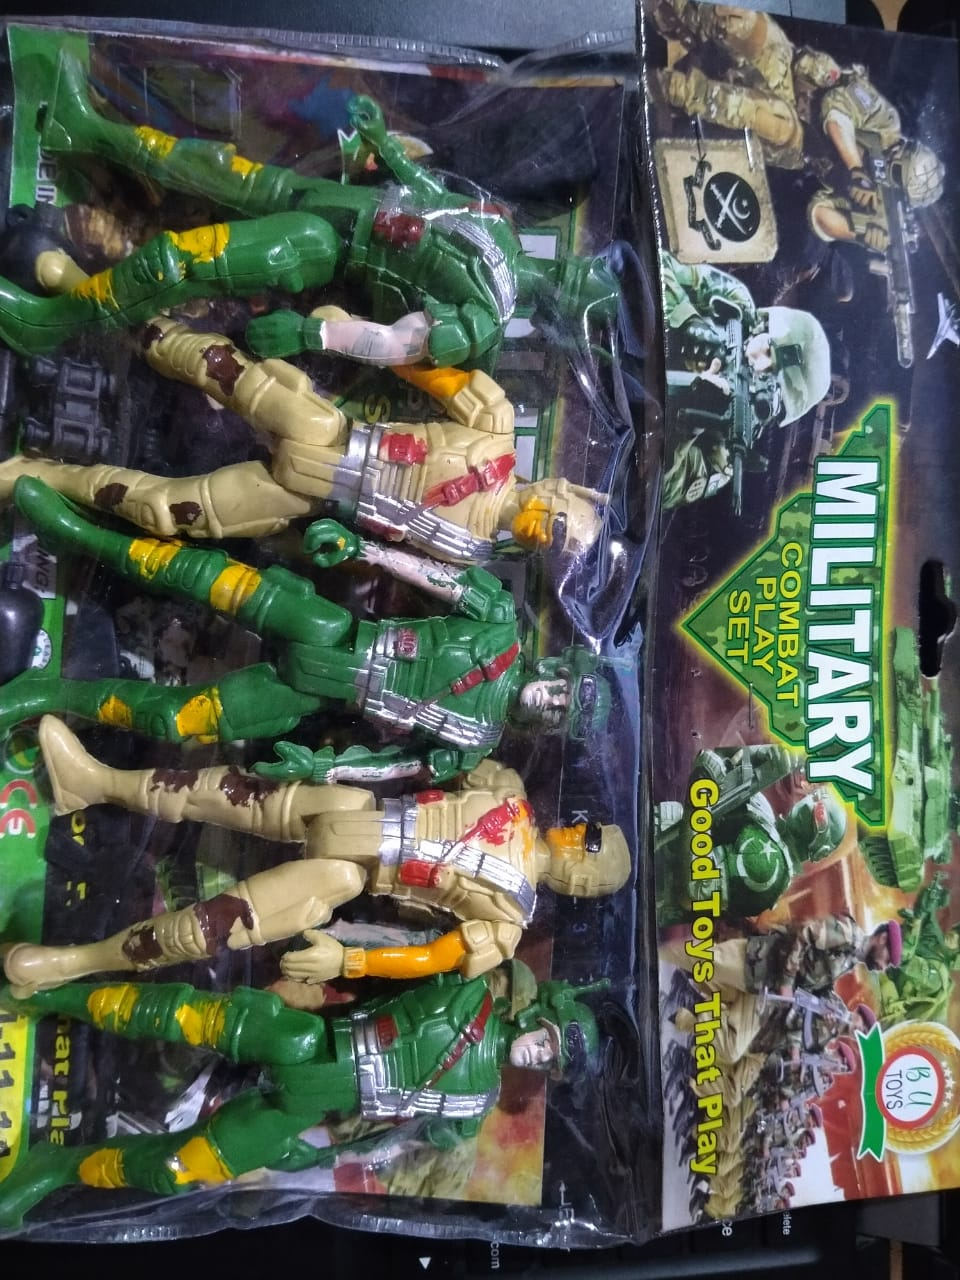 Military Army Men toys l Bendable Plastic Toy Soldiers for Kids l Simulation Soldier Model (Height 4.5 Inches Approx)